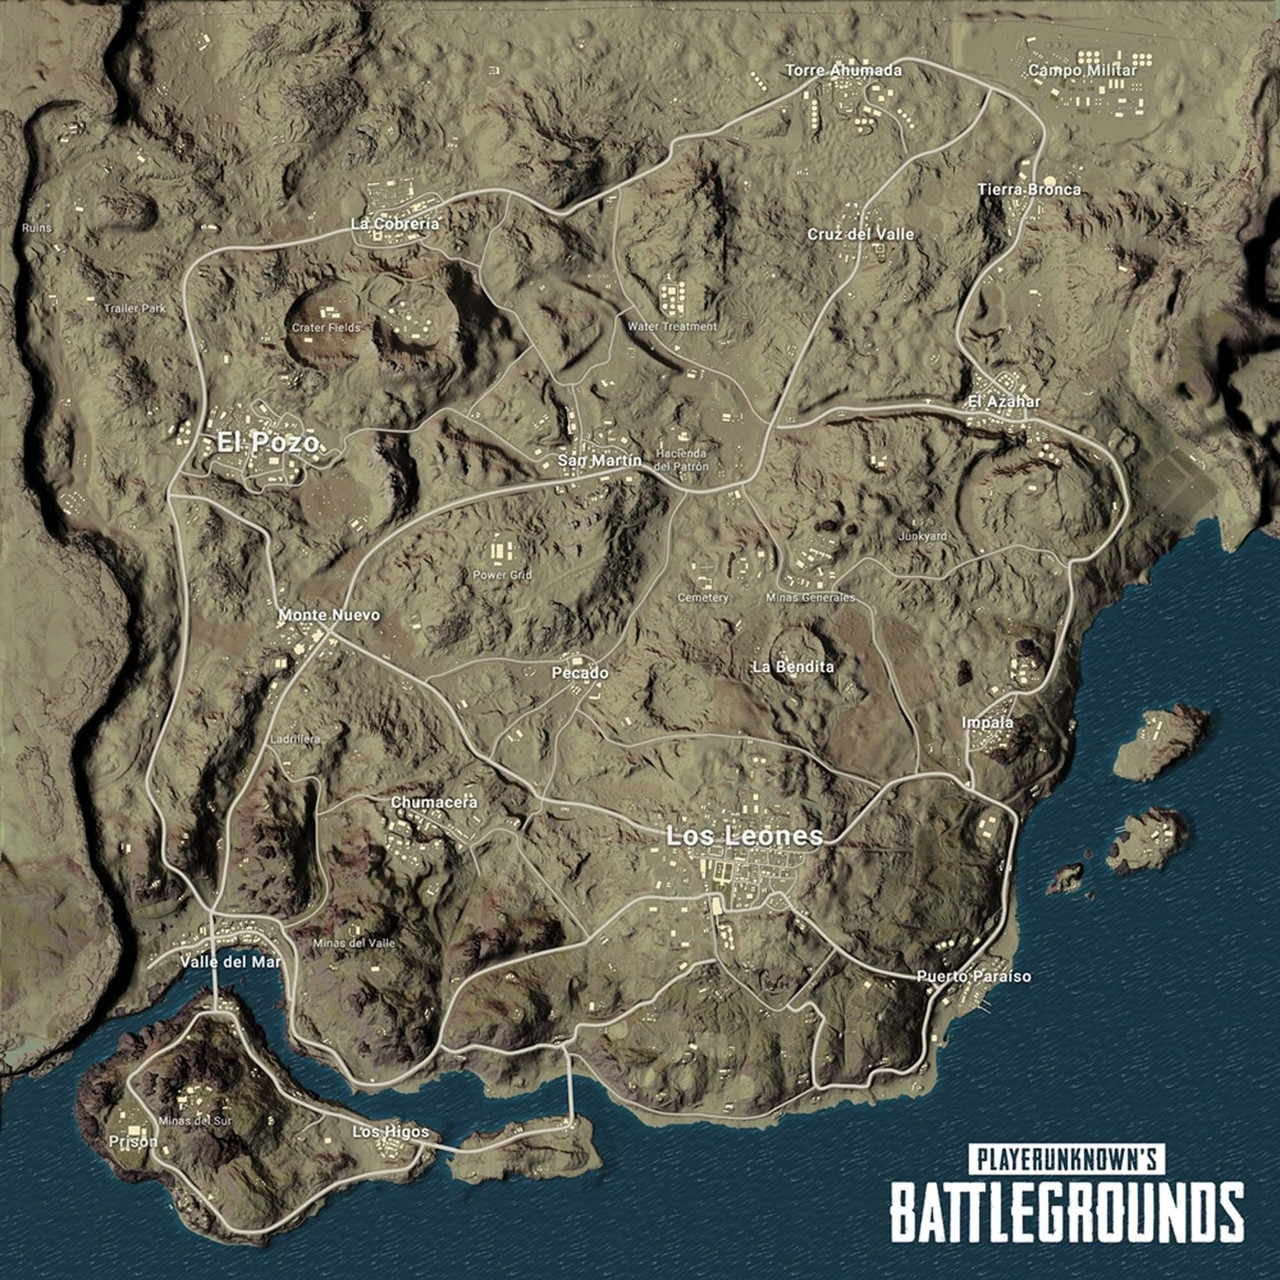 Here's a detailed look at PUBG's new map